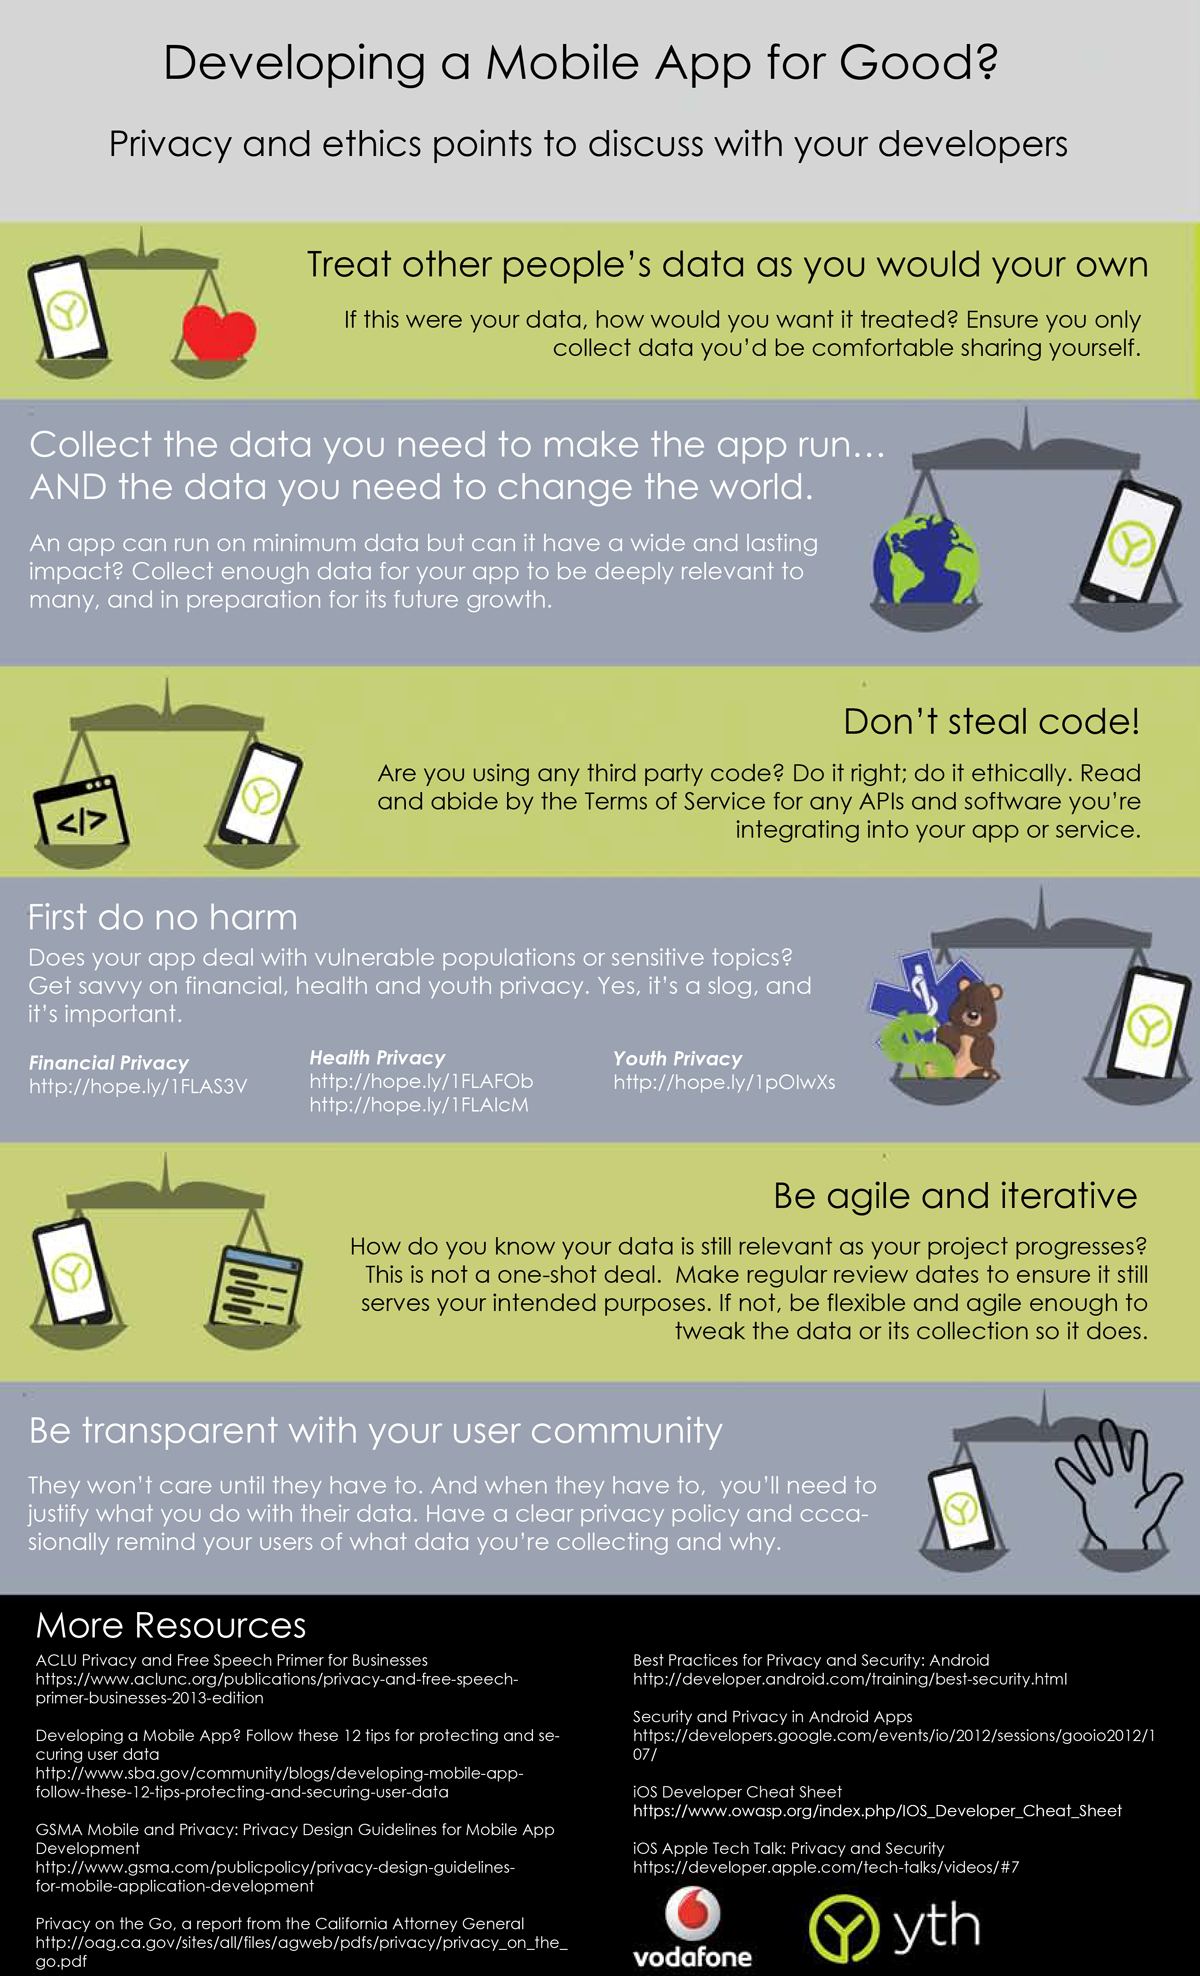 Developing a mobile app for youth privacy infographic